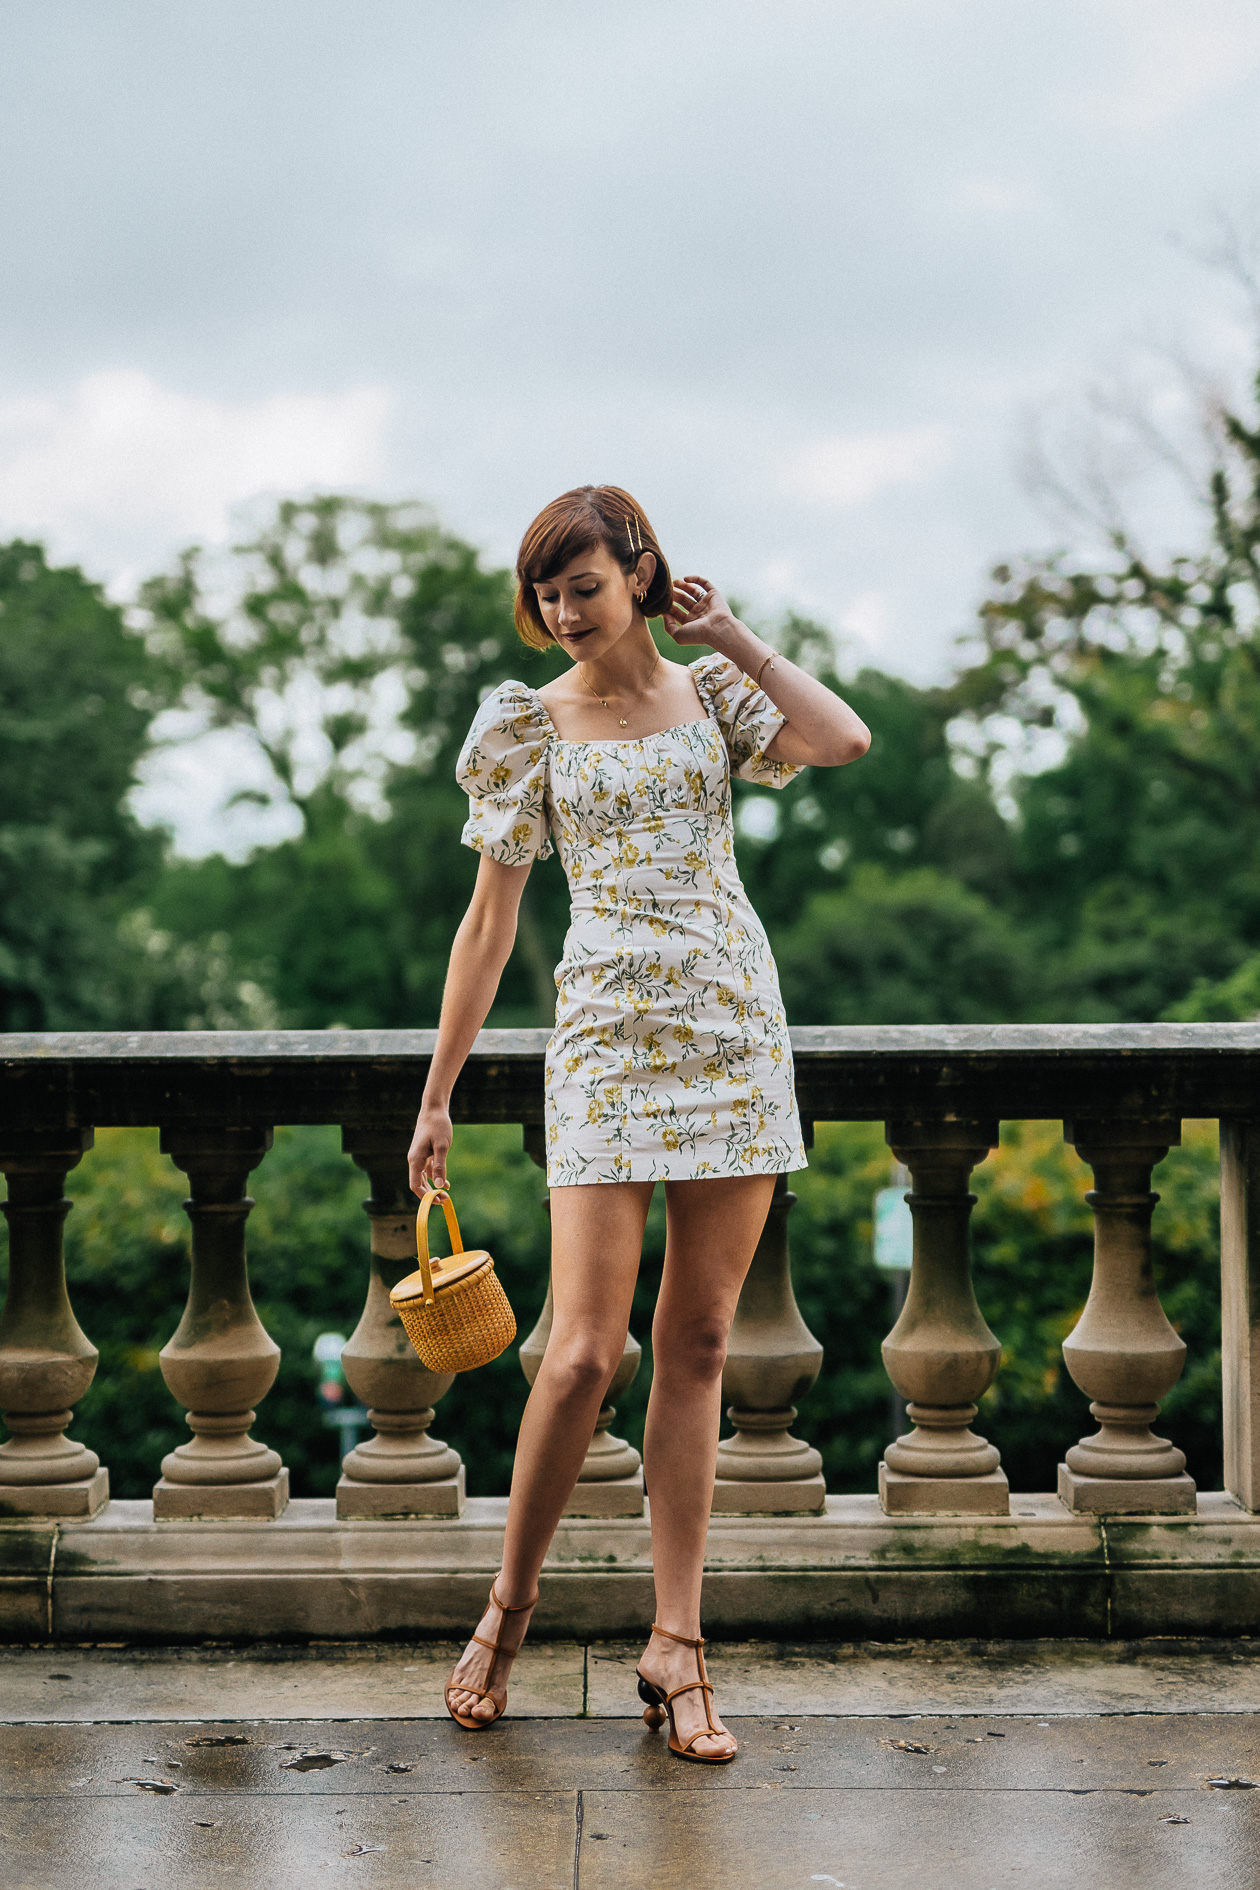 And Other Stories dress & Cult Gaia sandals